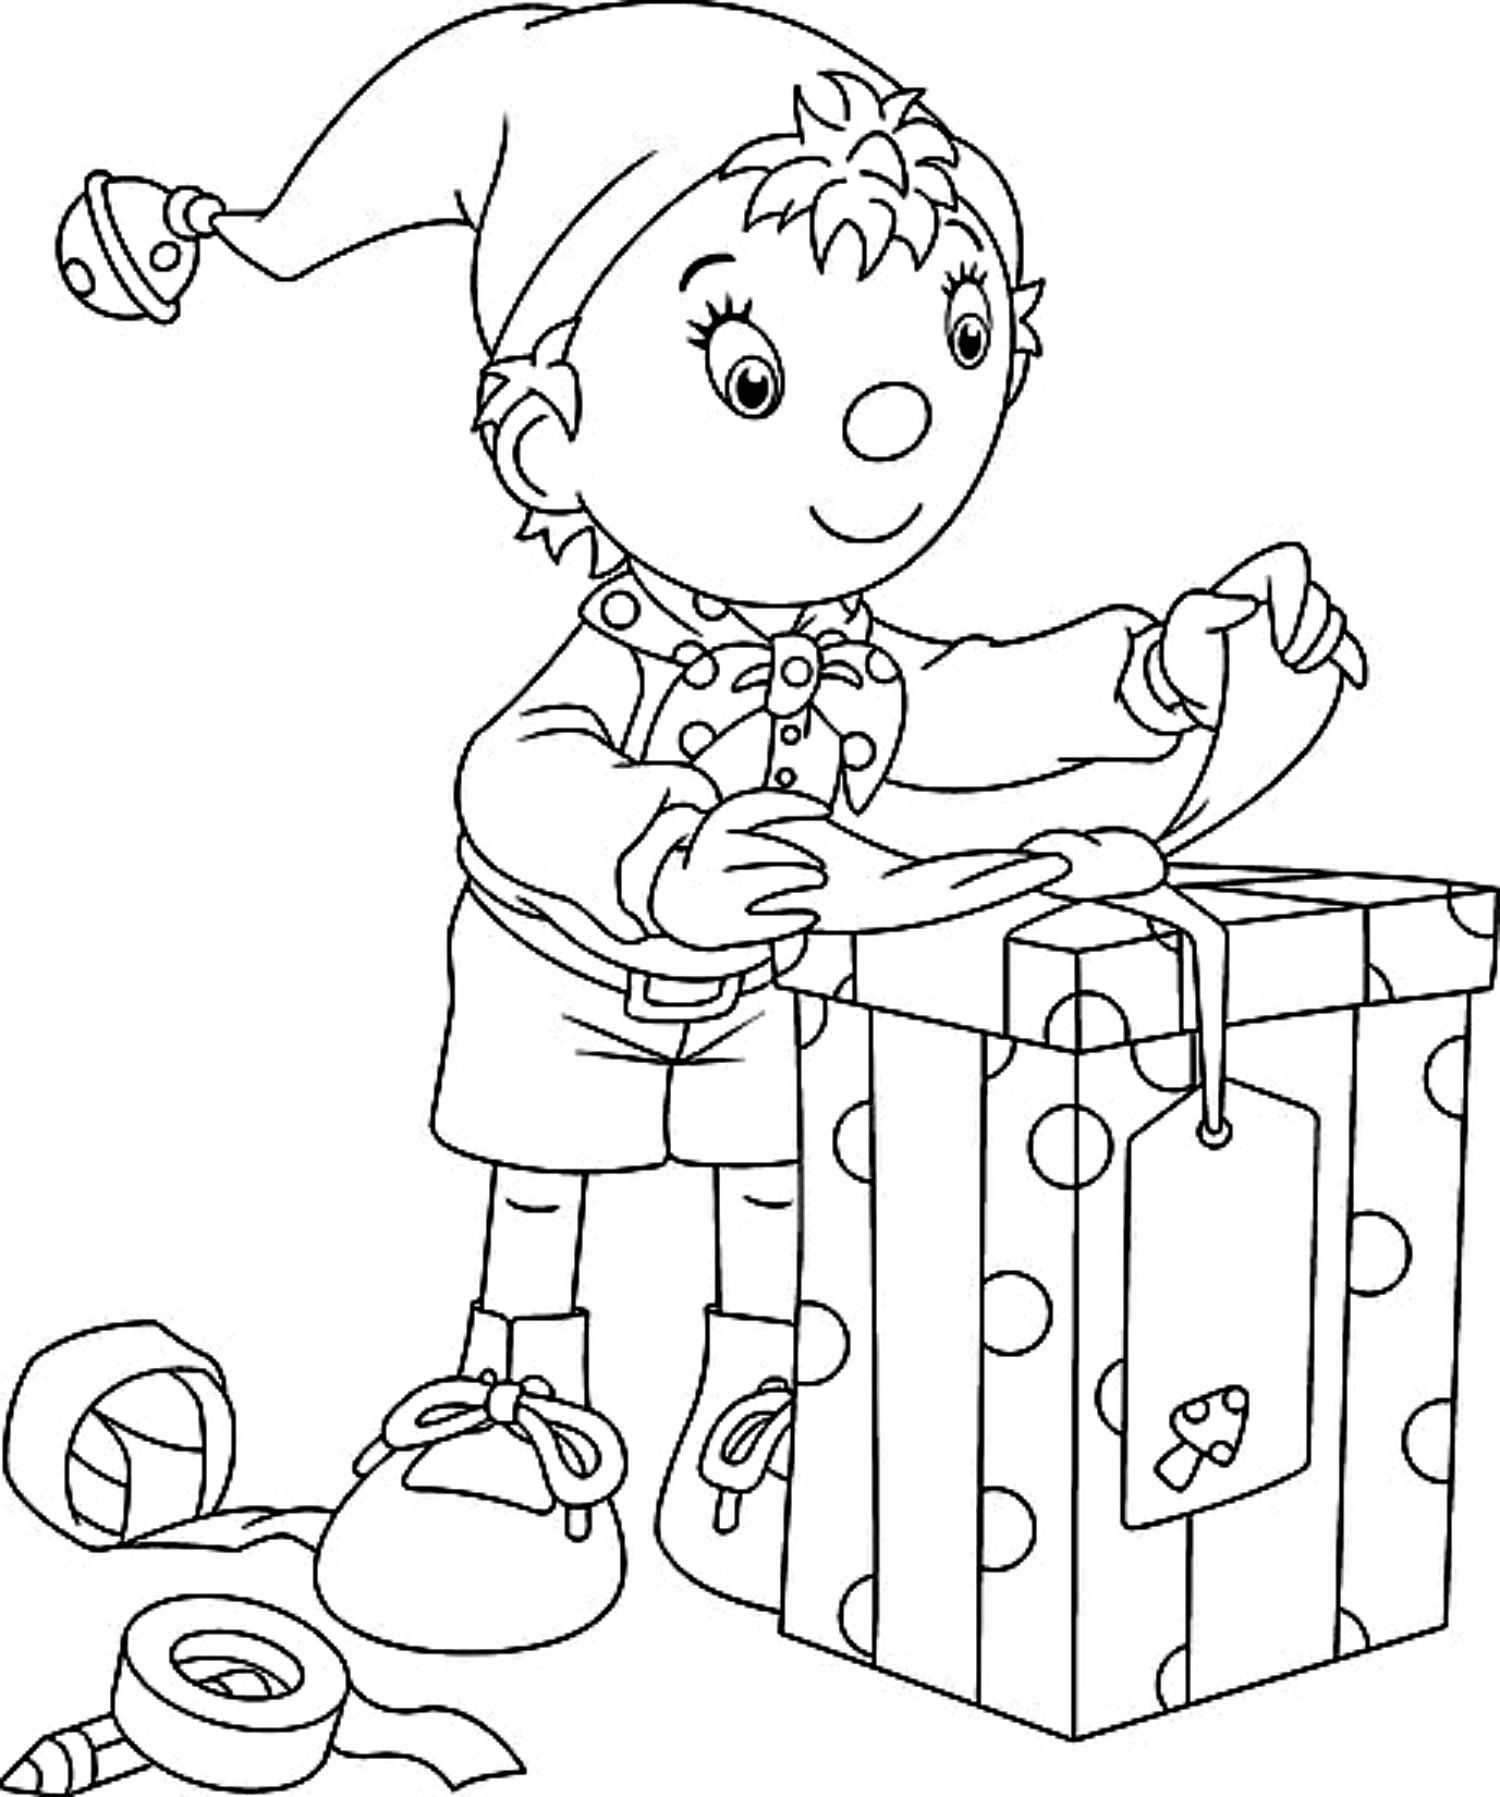 Santa S Elves Colouring Pages With CHRISTMAS COLORING PAGE Song And Free Printable Christmas Elf